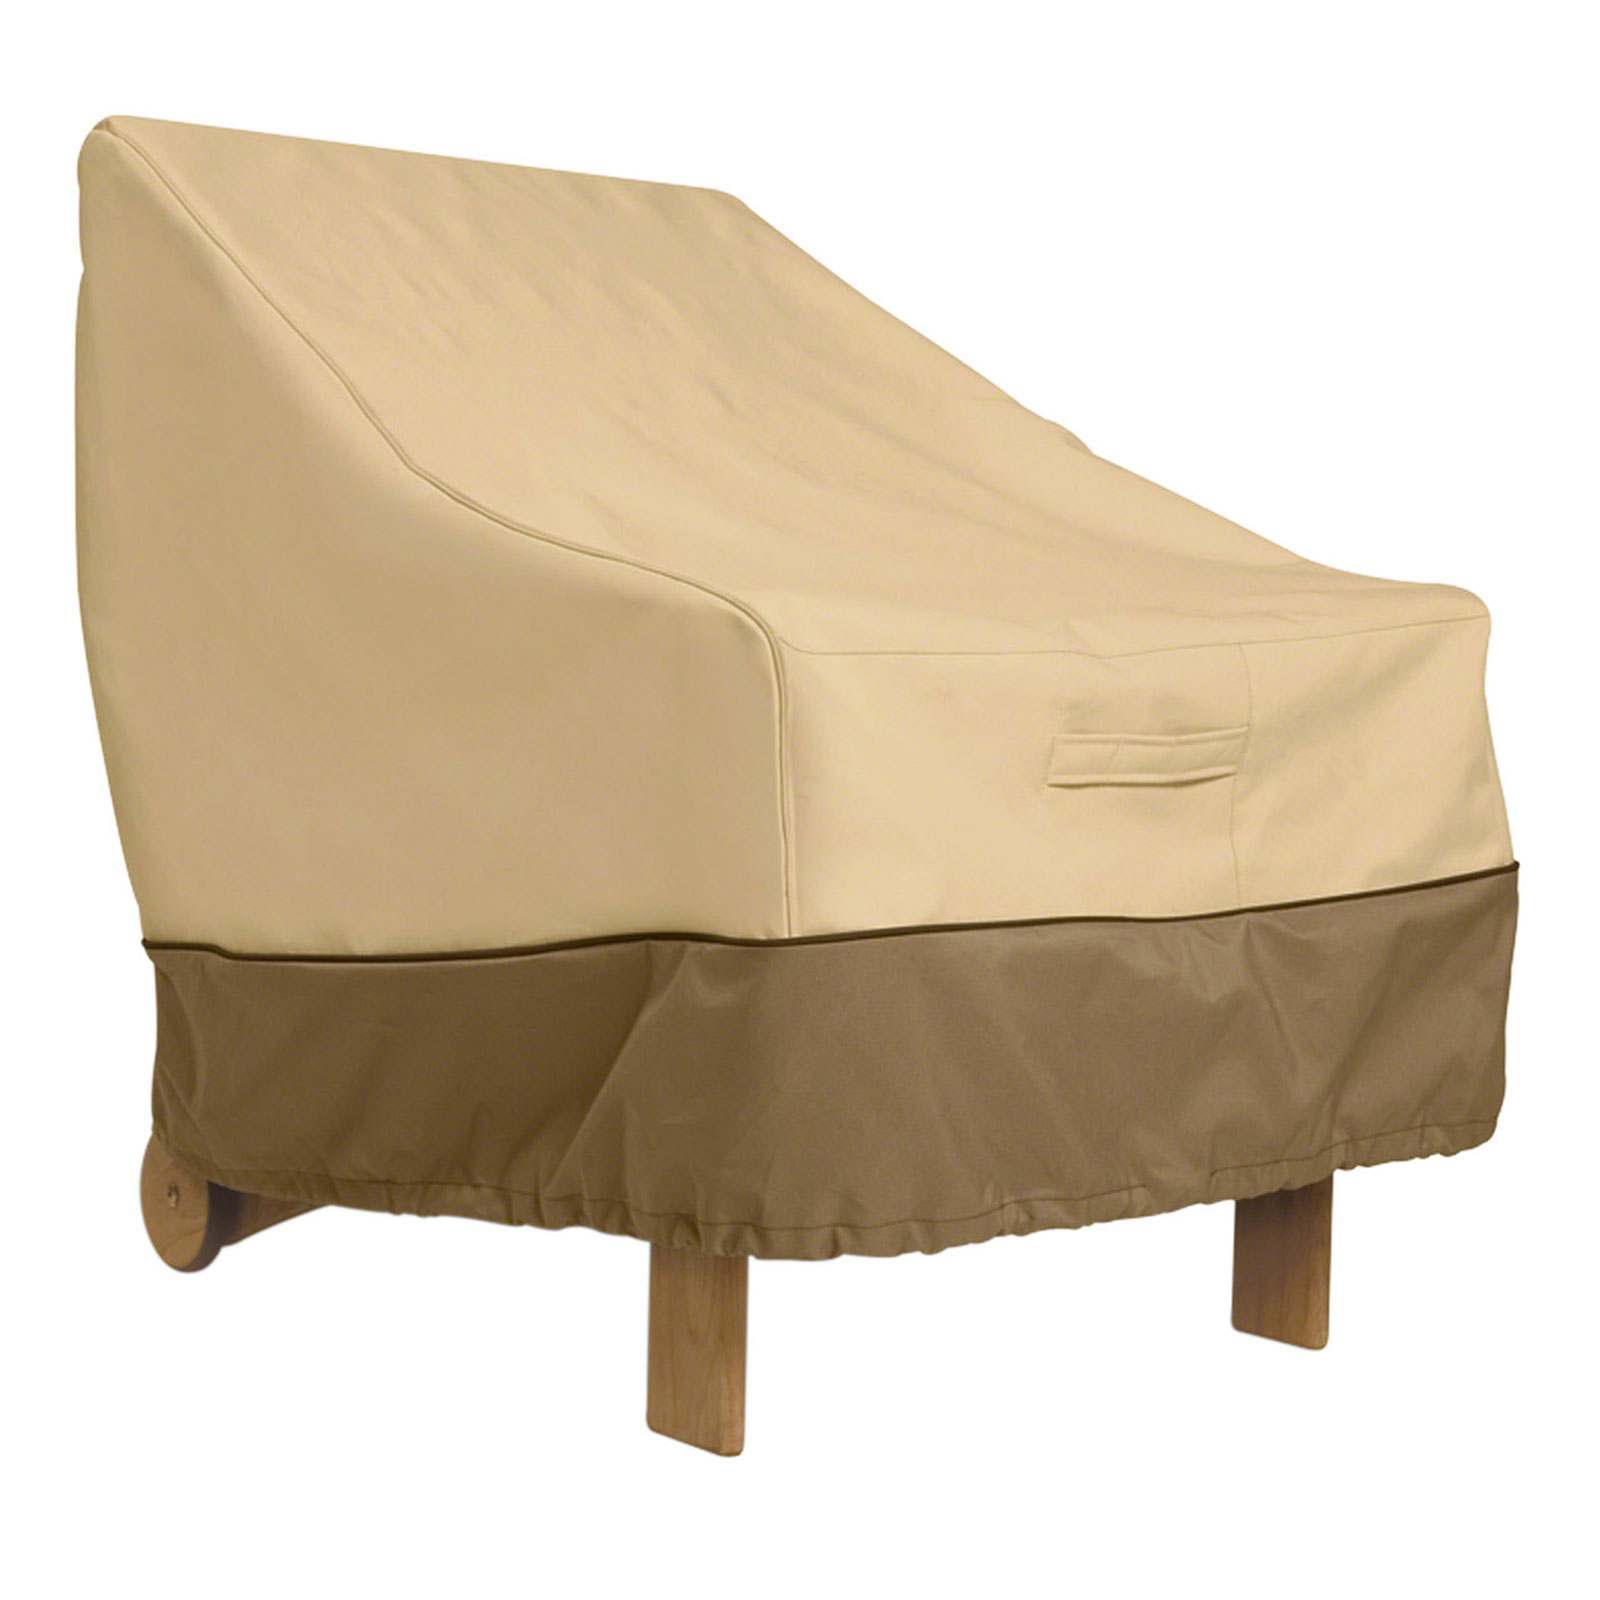 Lounge Chair Cover Veranda in Patio Furniture Covers